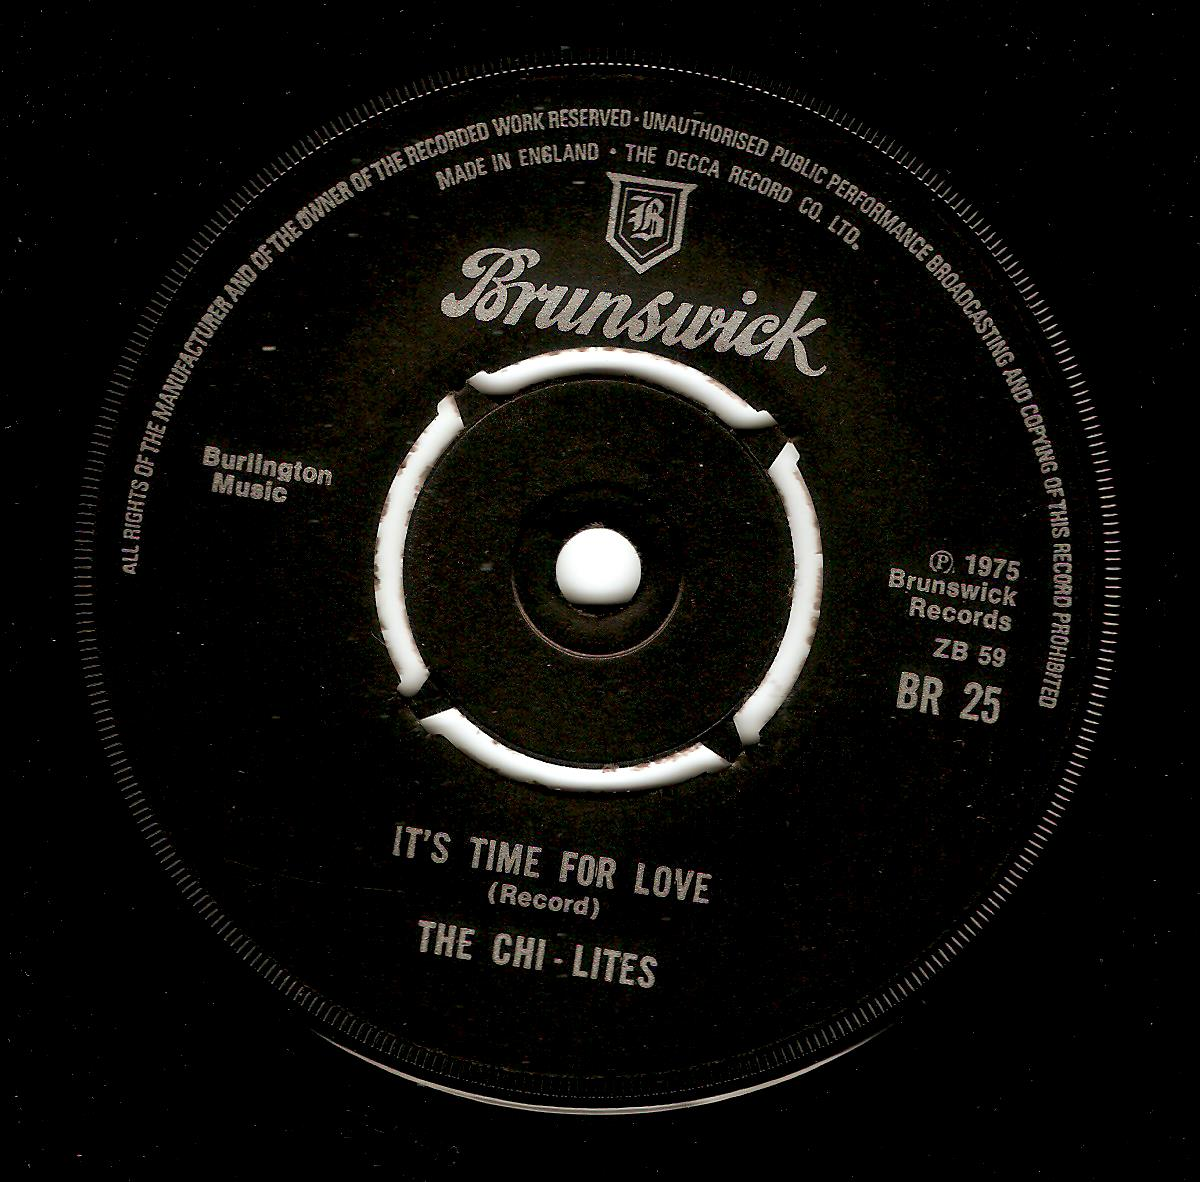 The Chi Lites It S Time For Love Vinyl Record 7 Inch Brunswick 1975